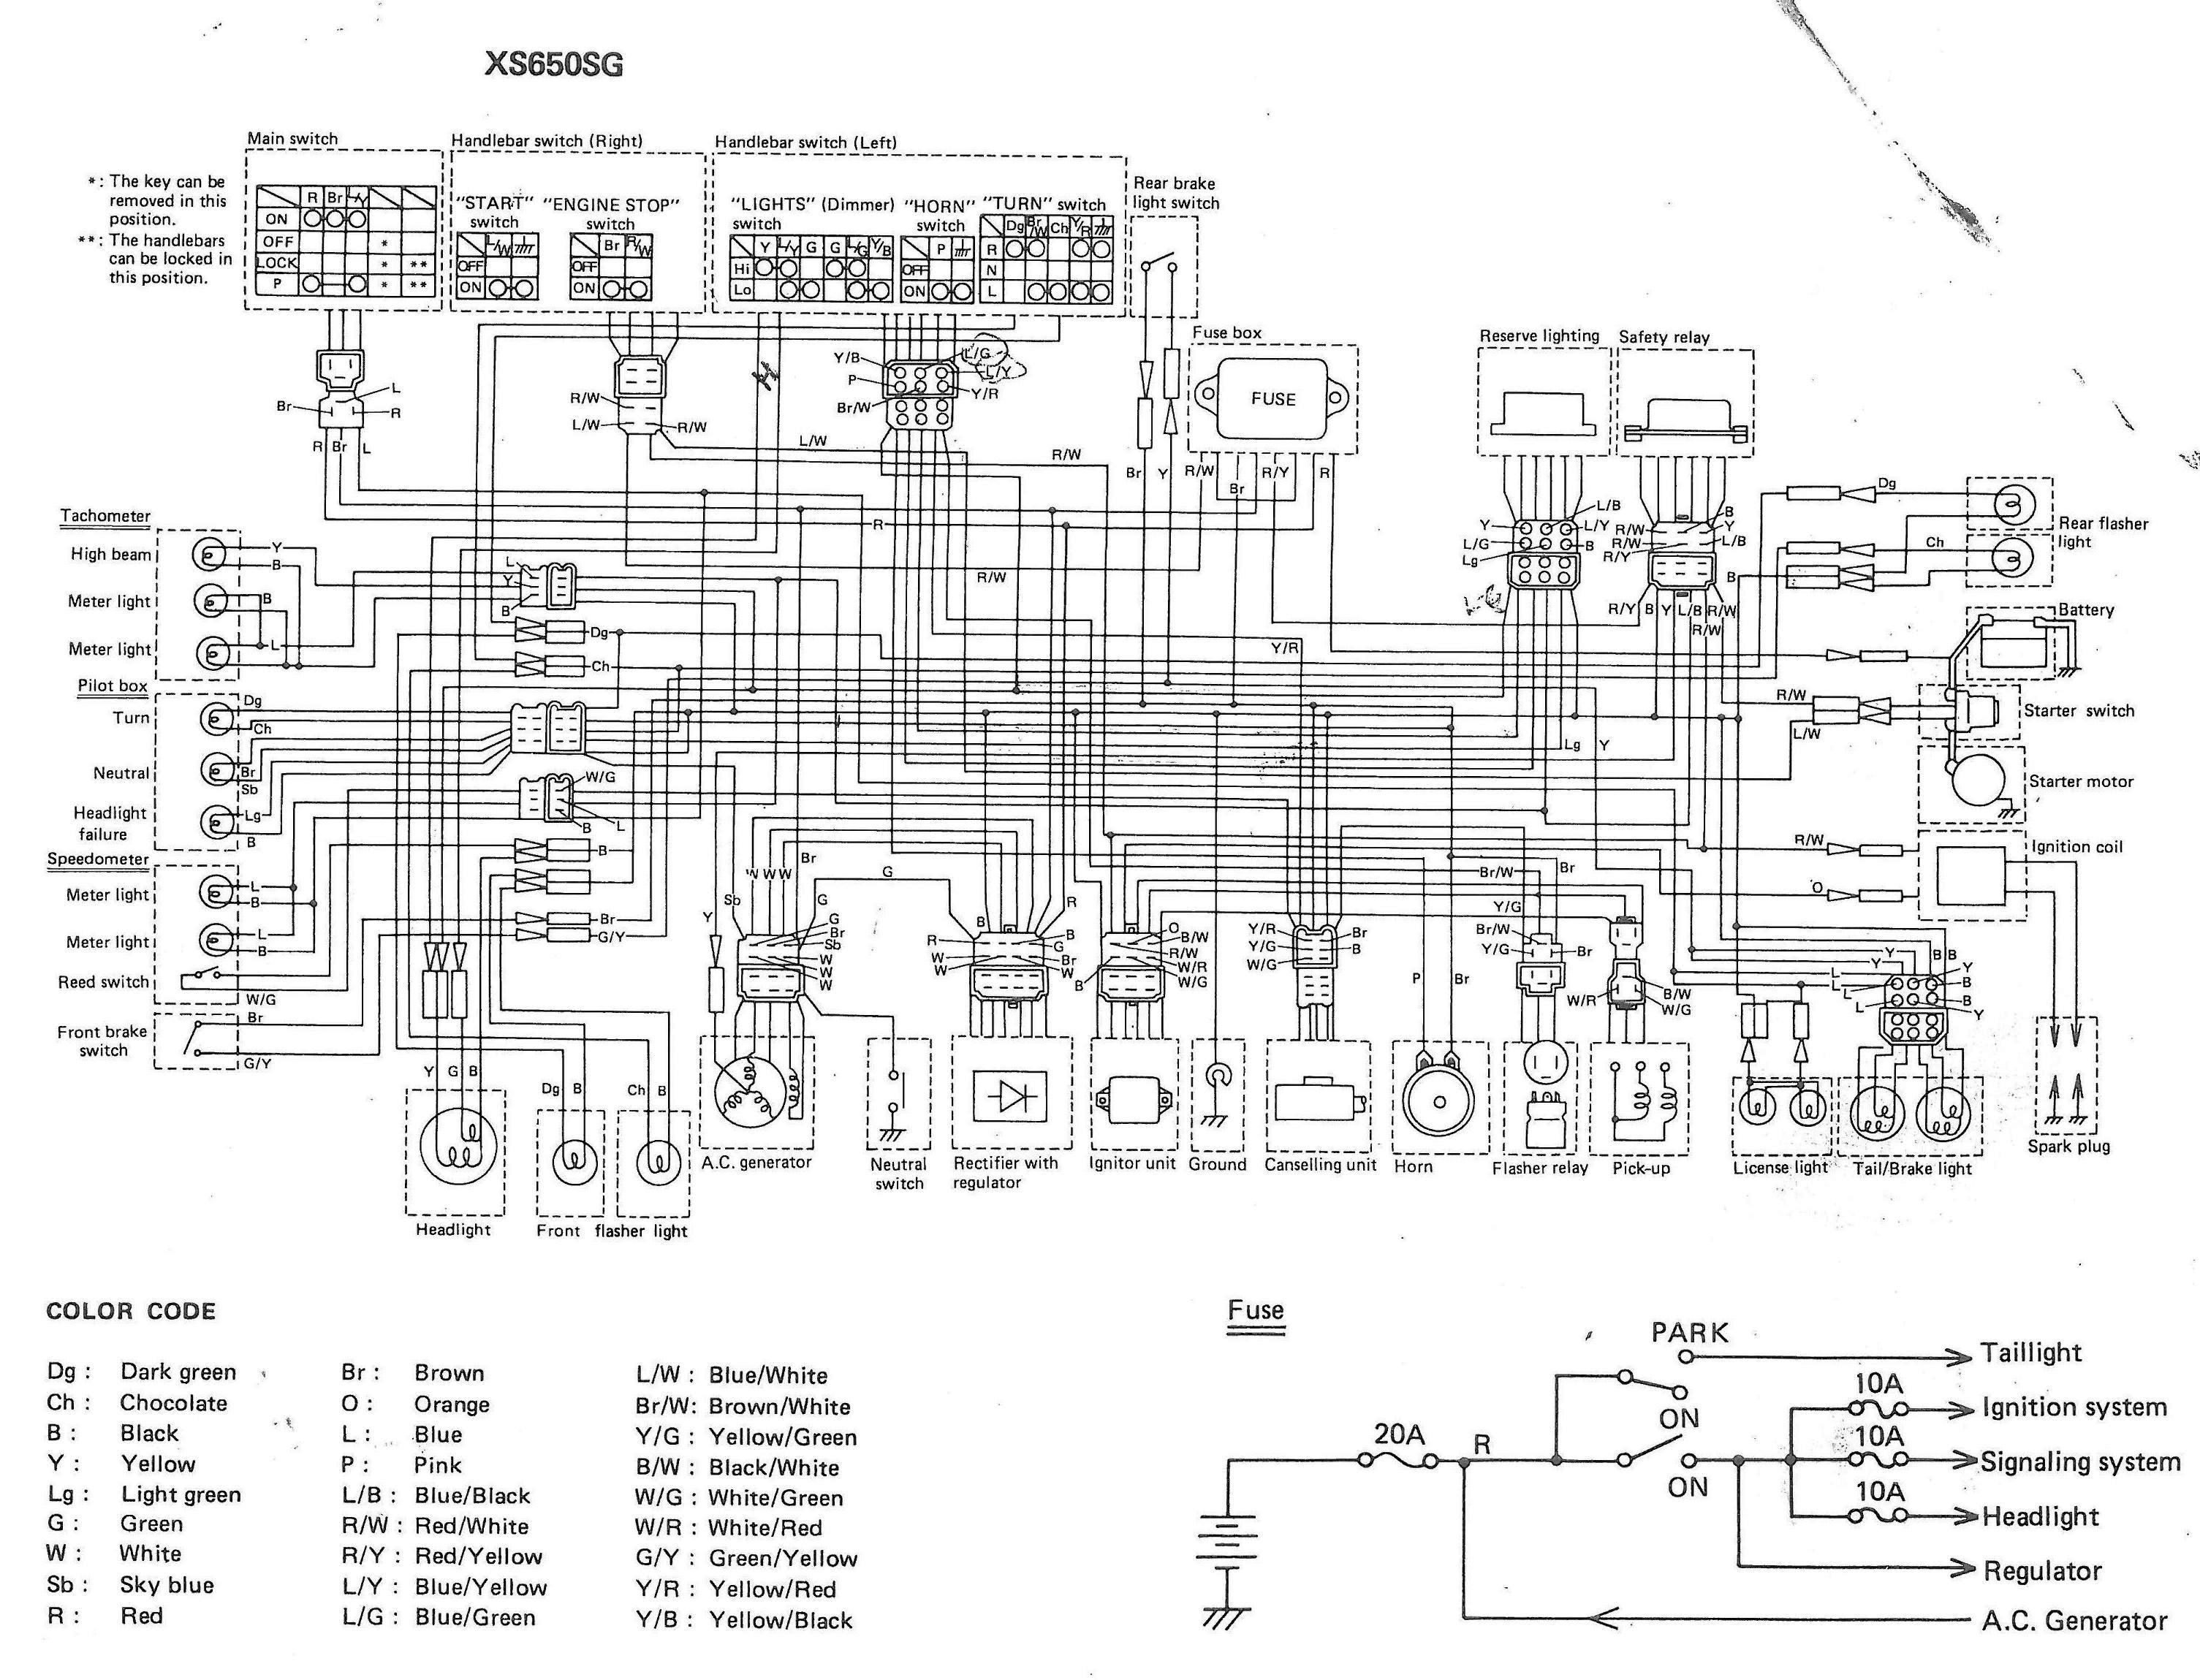 80 xs650sg 1 xs650 80 xs650g and sg wiring diagrams thexscafe 1975 xs650 wiring diagram at n-0.co